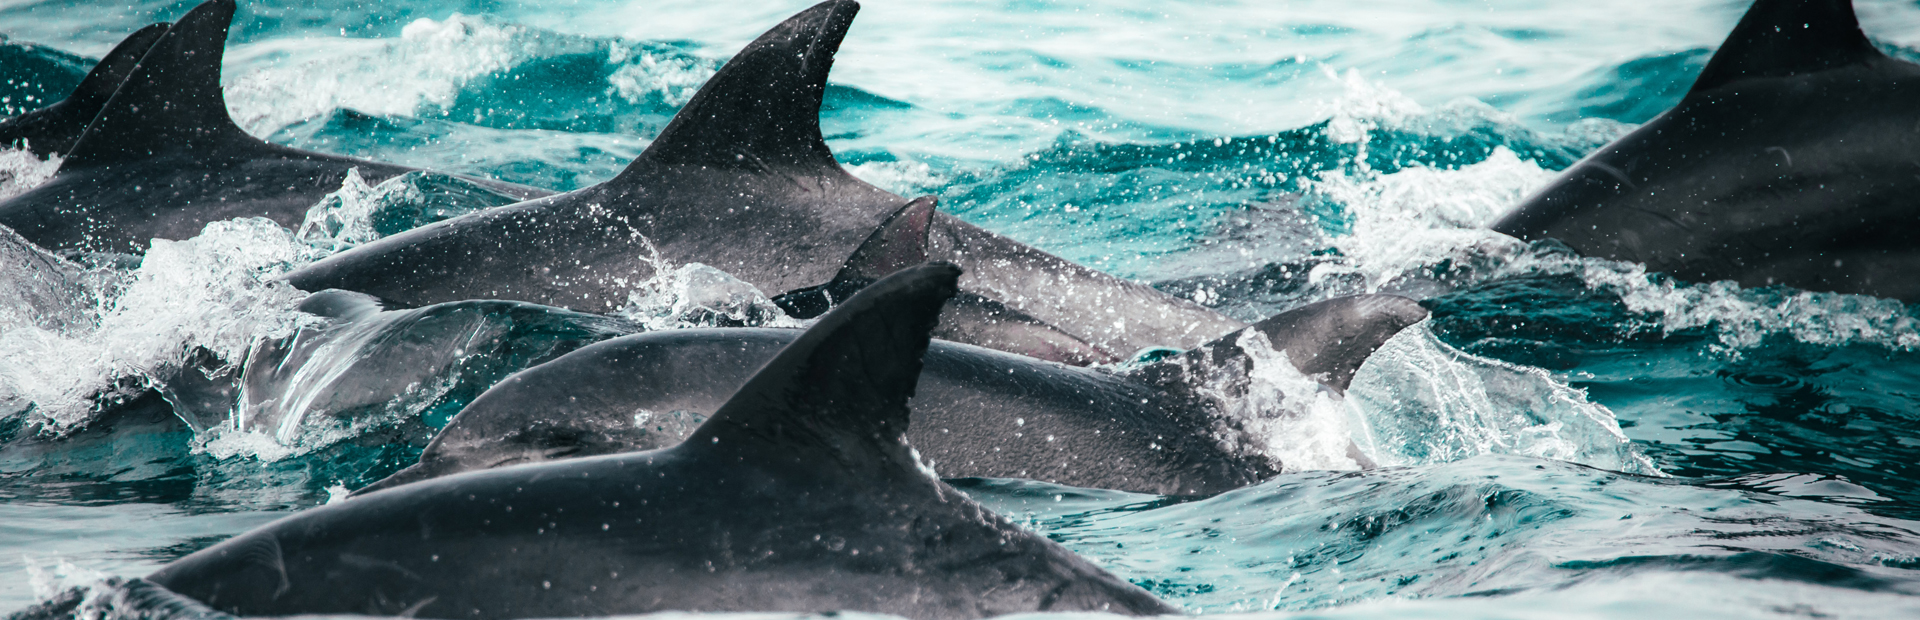 South Africa Dophins redcharlie-ybmLeNwgvAo-unsplash copy